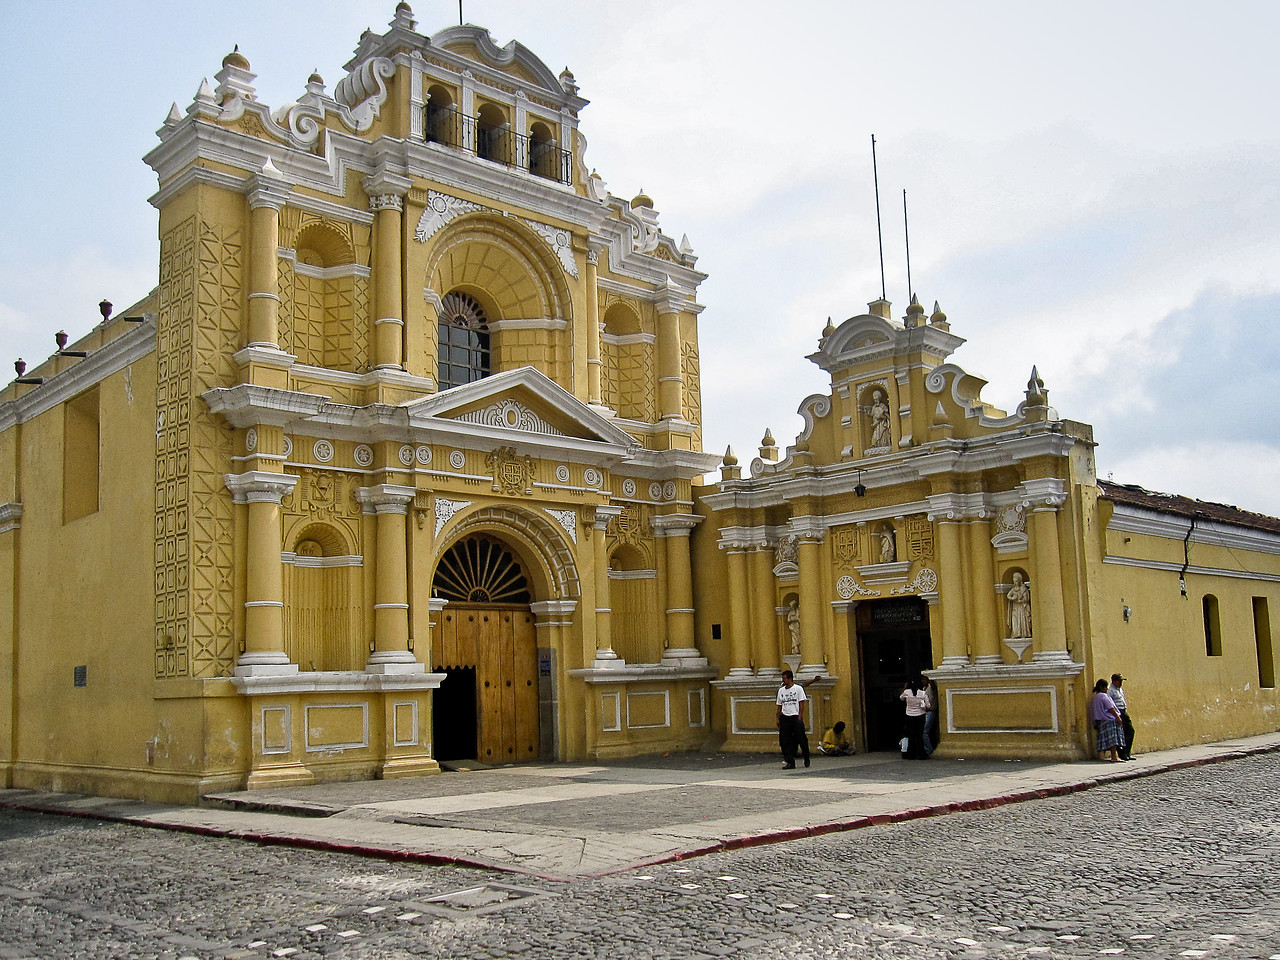 One of the main churches in Antigua